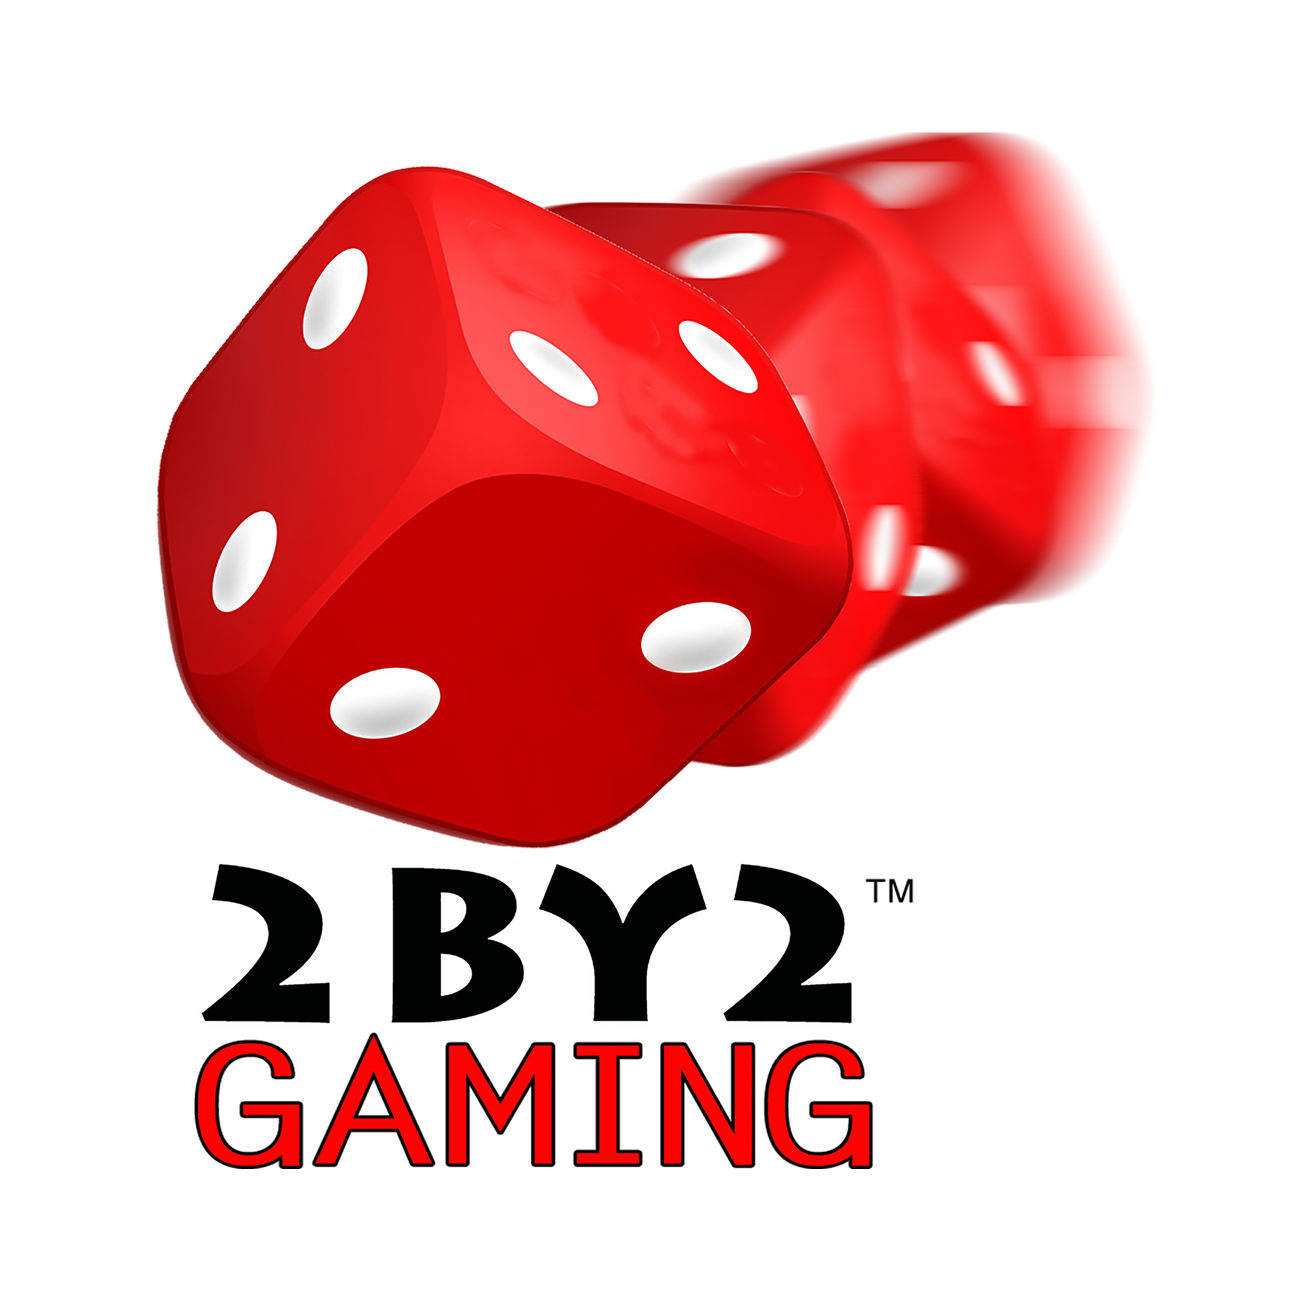 2 BY 2 Gaming игры